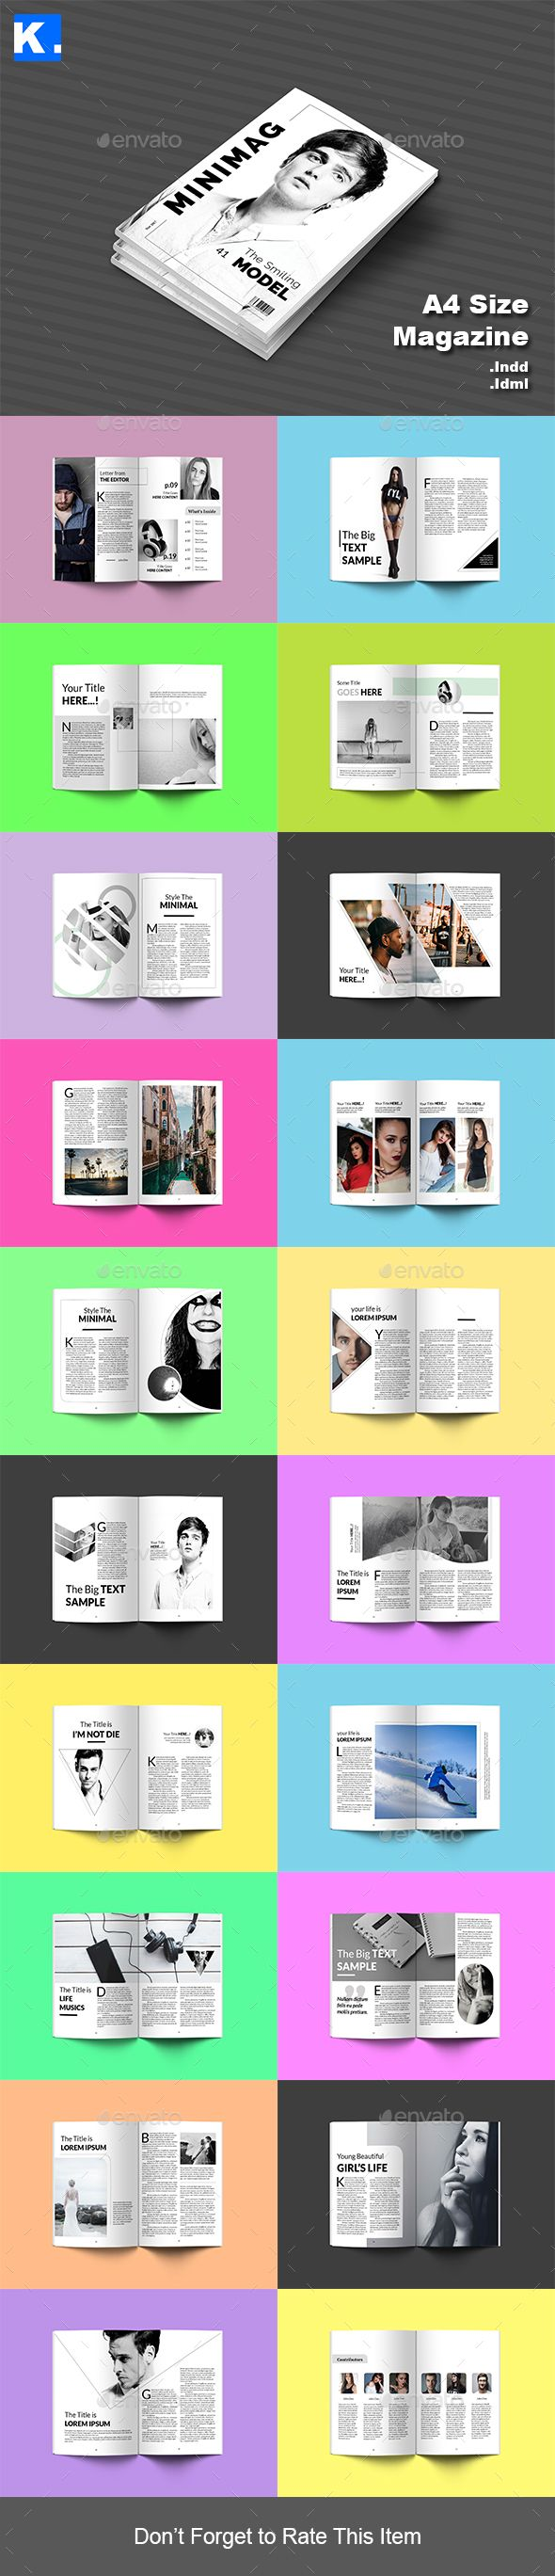 Indesign Magazine Template 3 - Magazines Print Templates